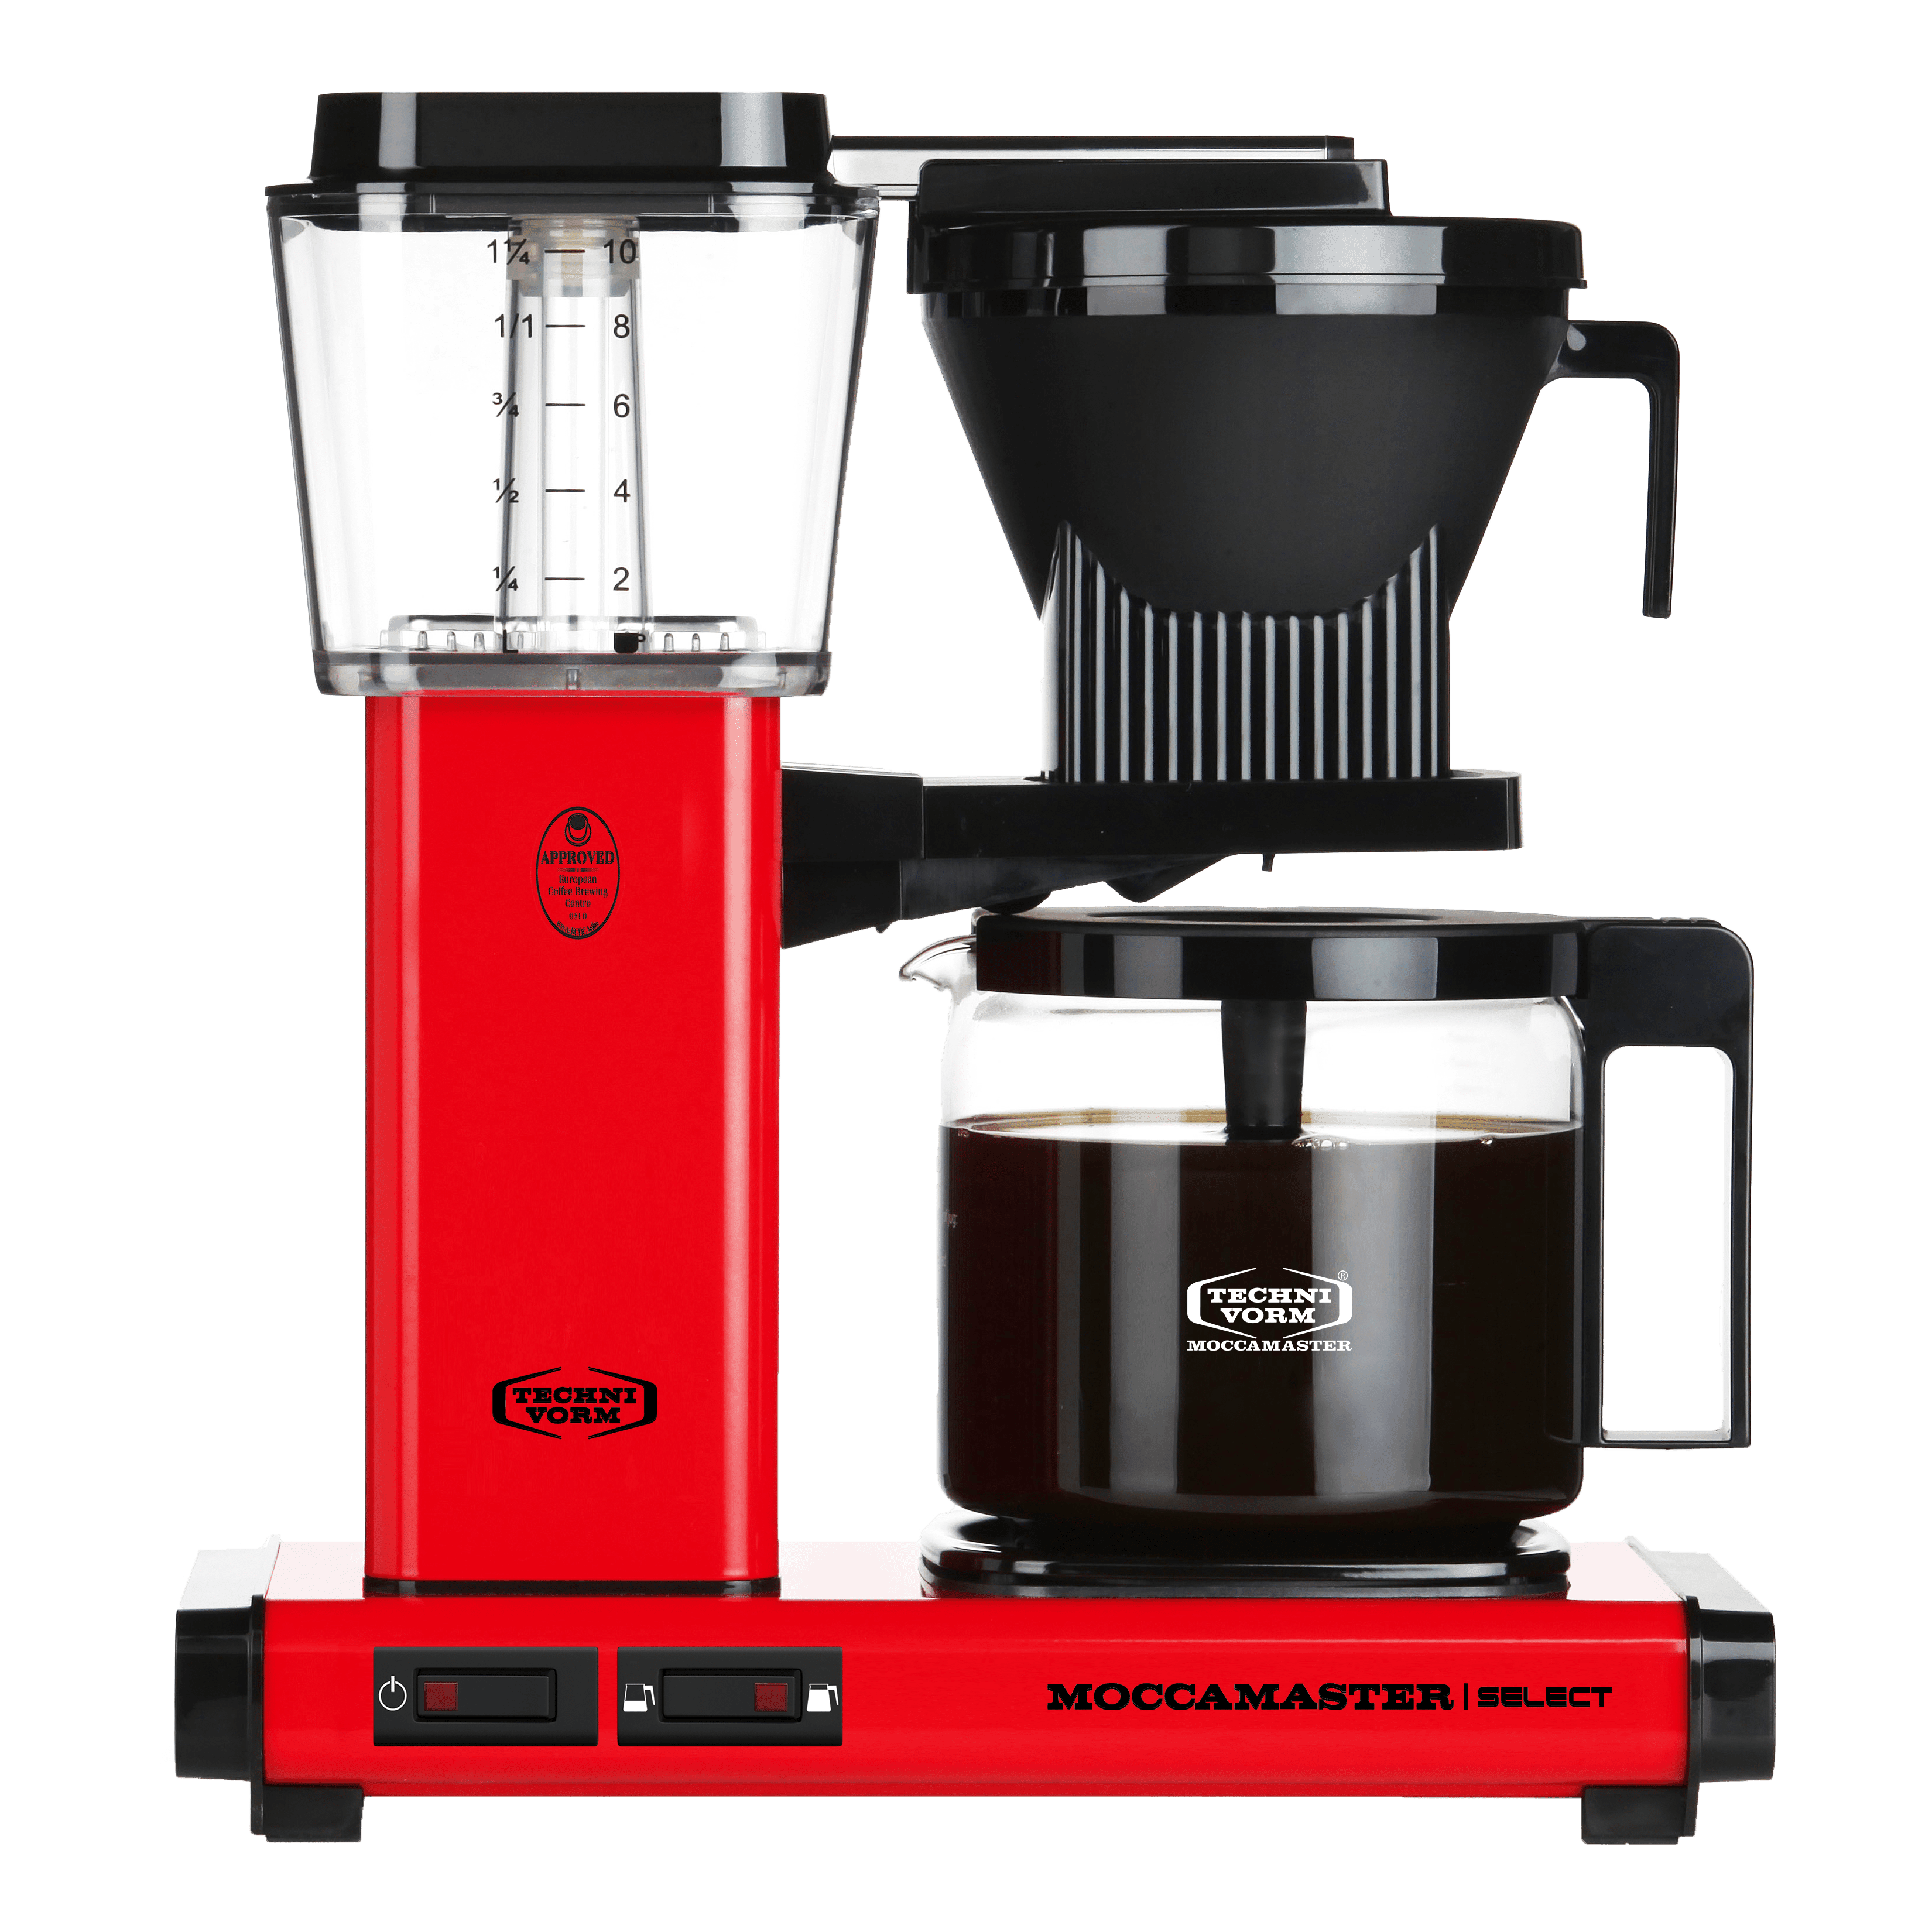 red moccamaster kbg select coffee machine